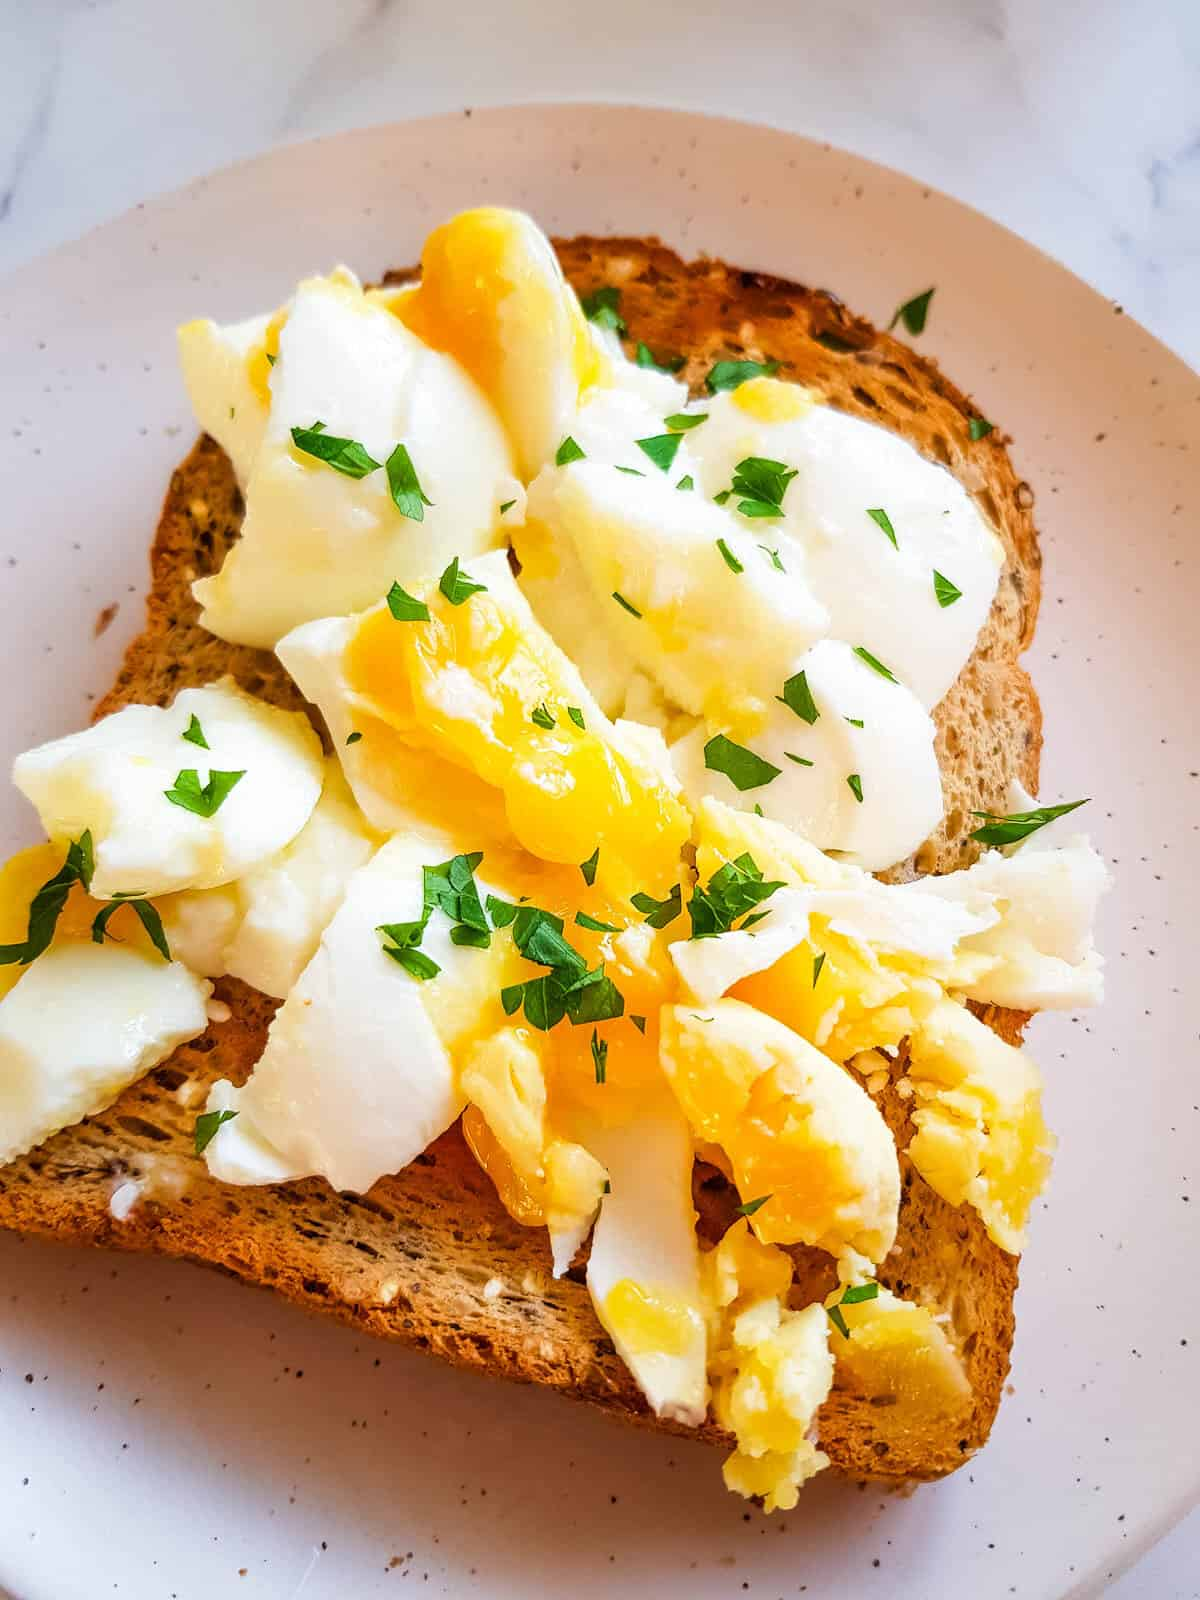 Toast with smashed egg and parsley.